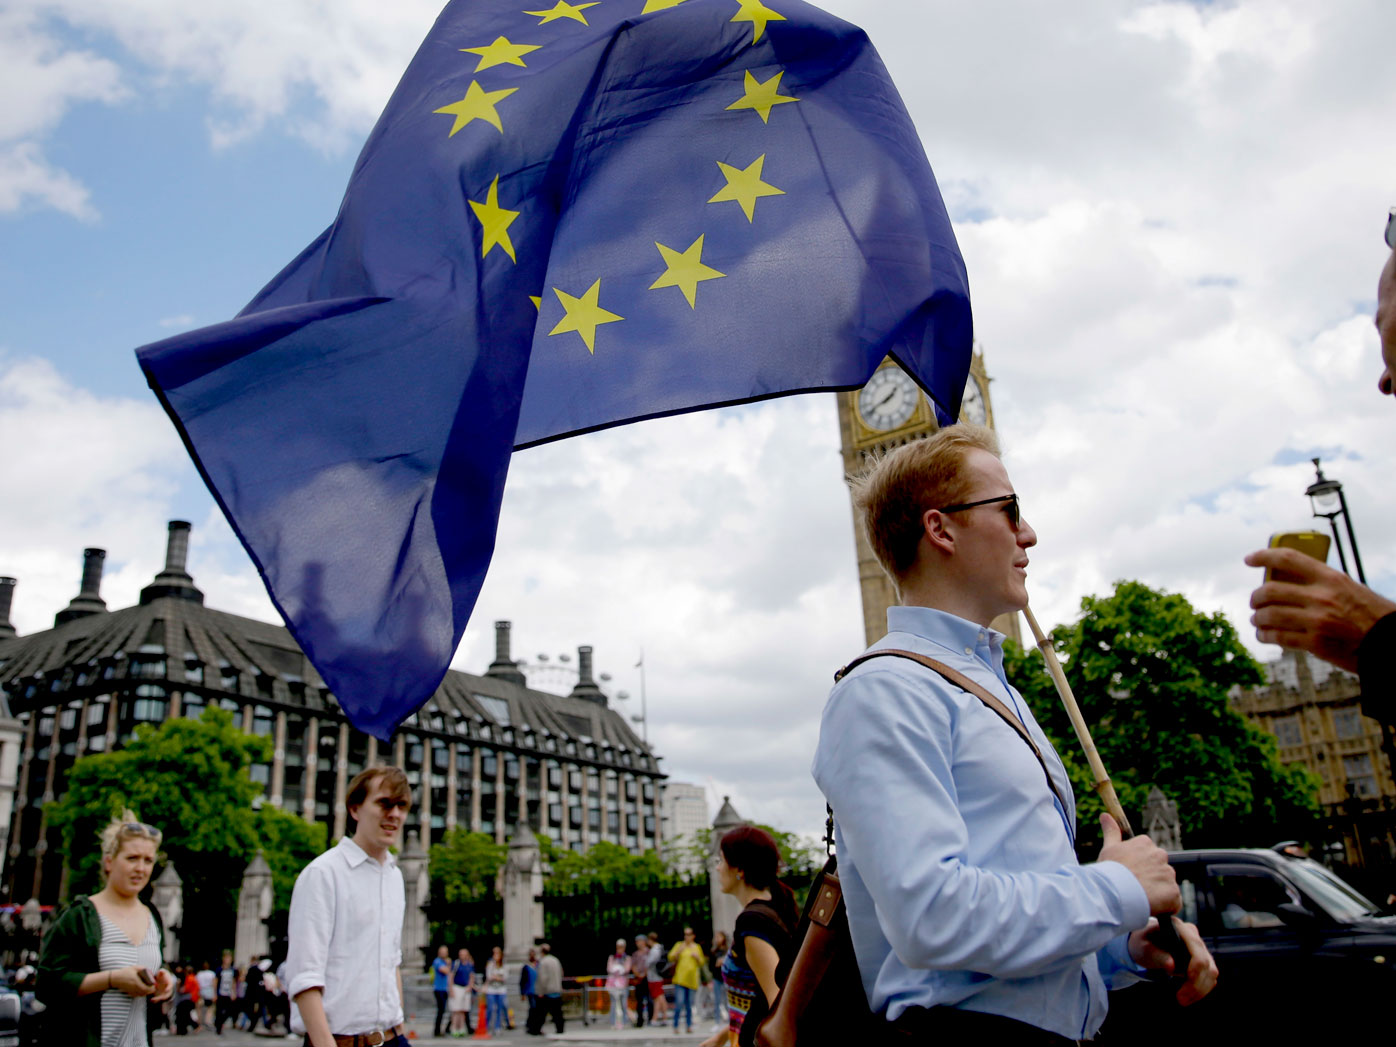 Shocked EU tells Britain to leave quickly